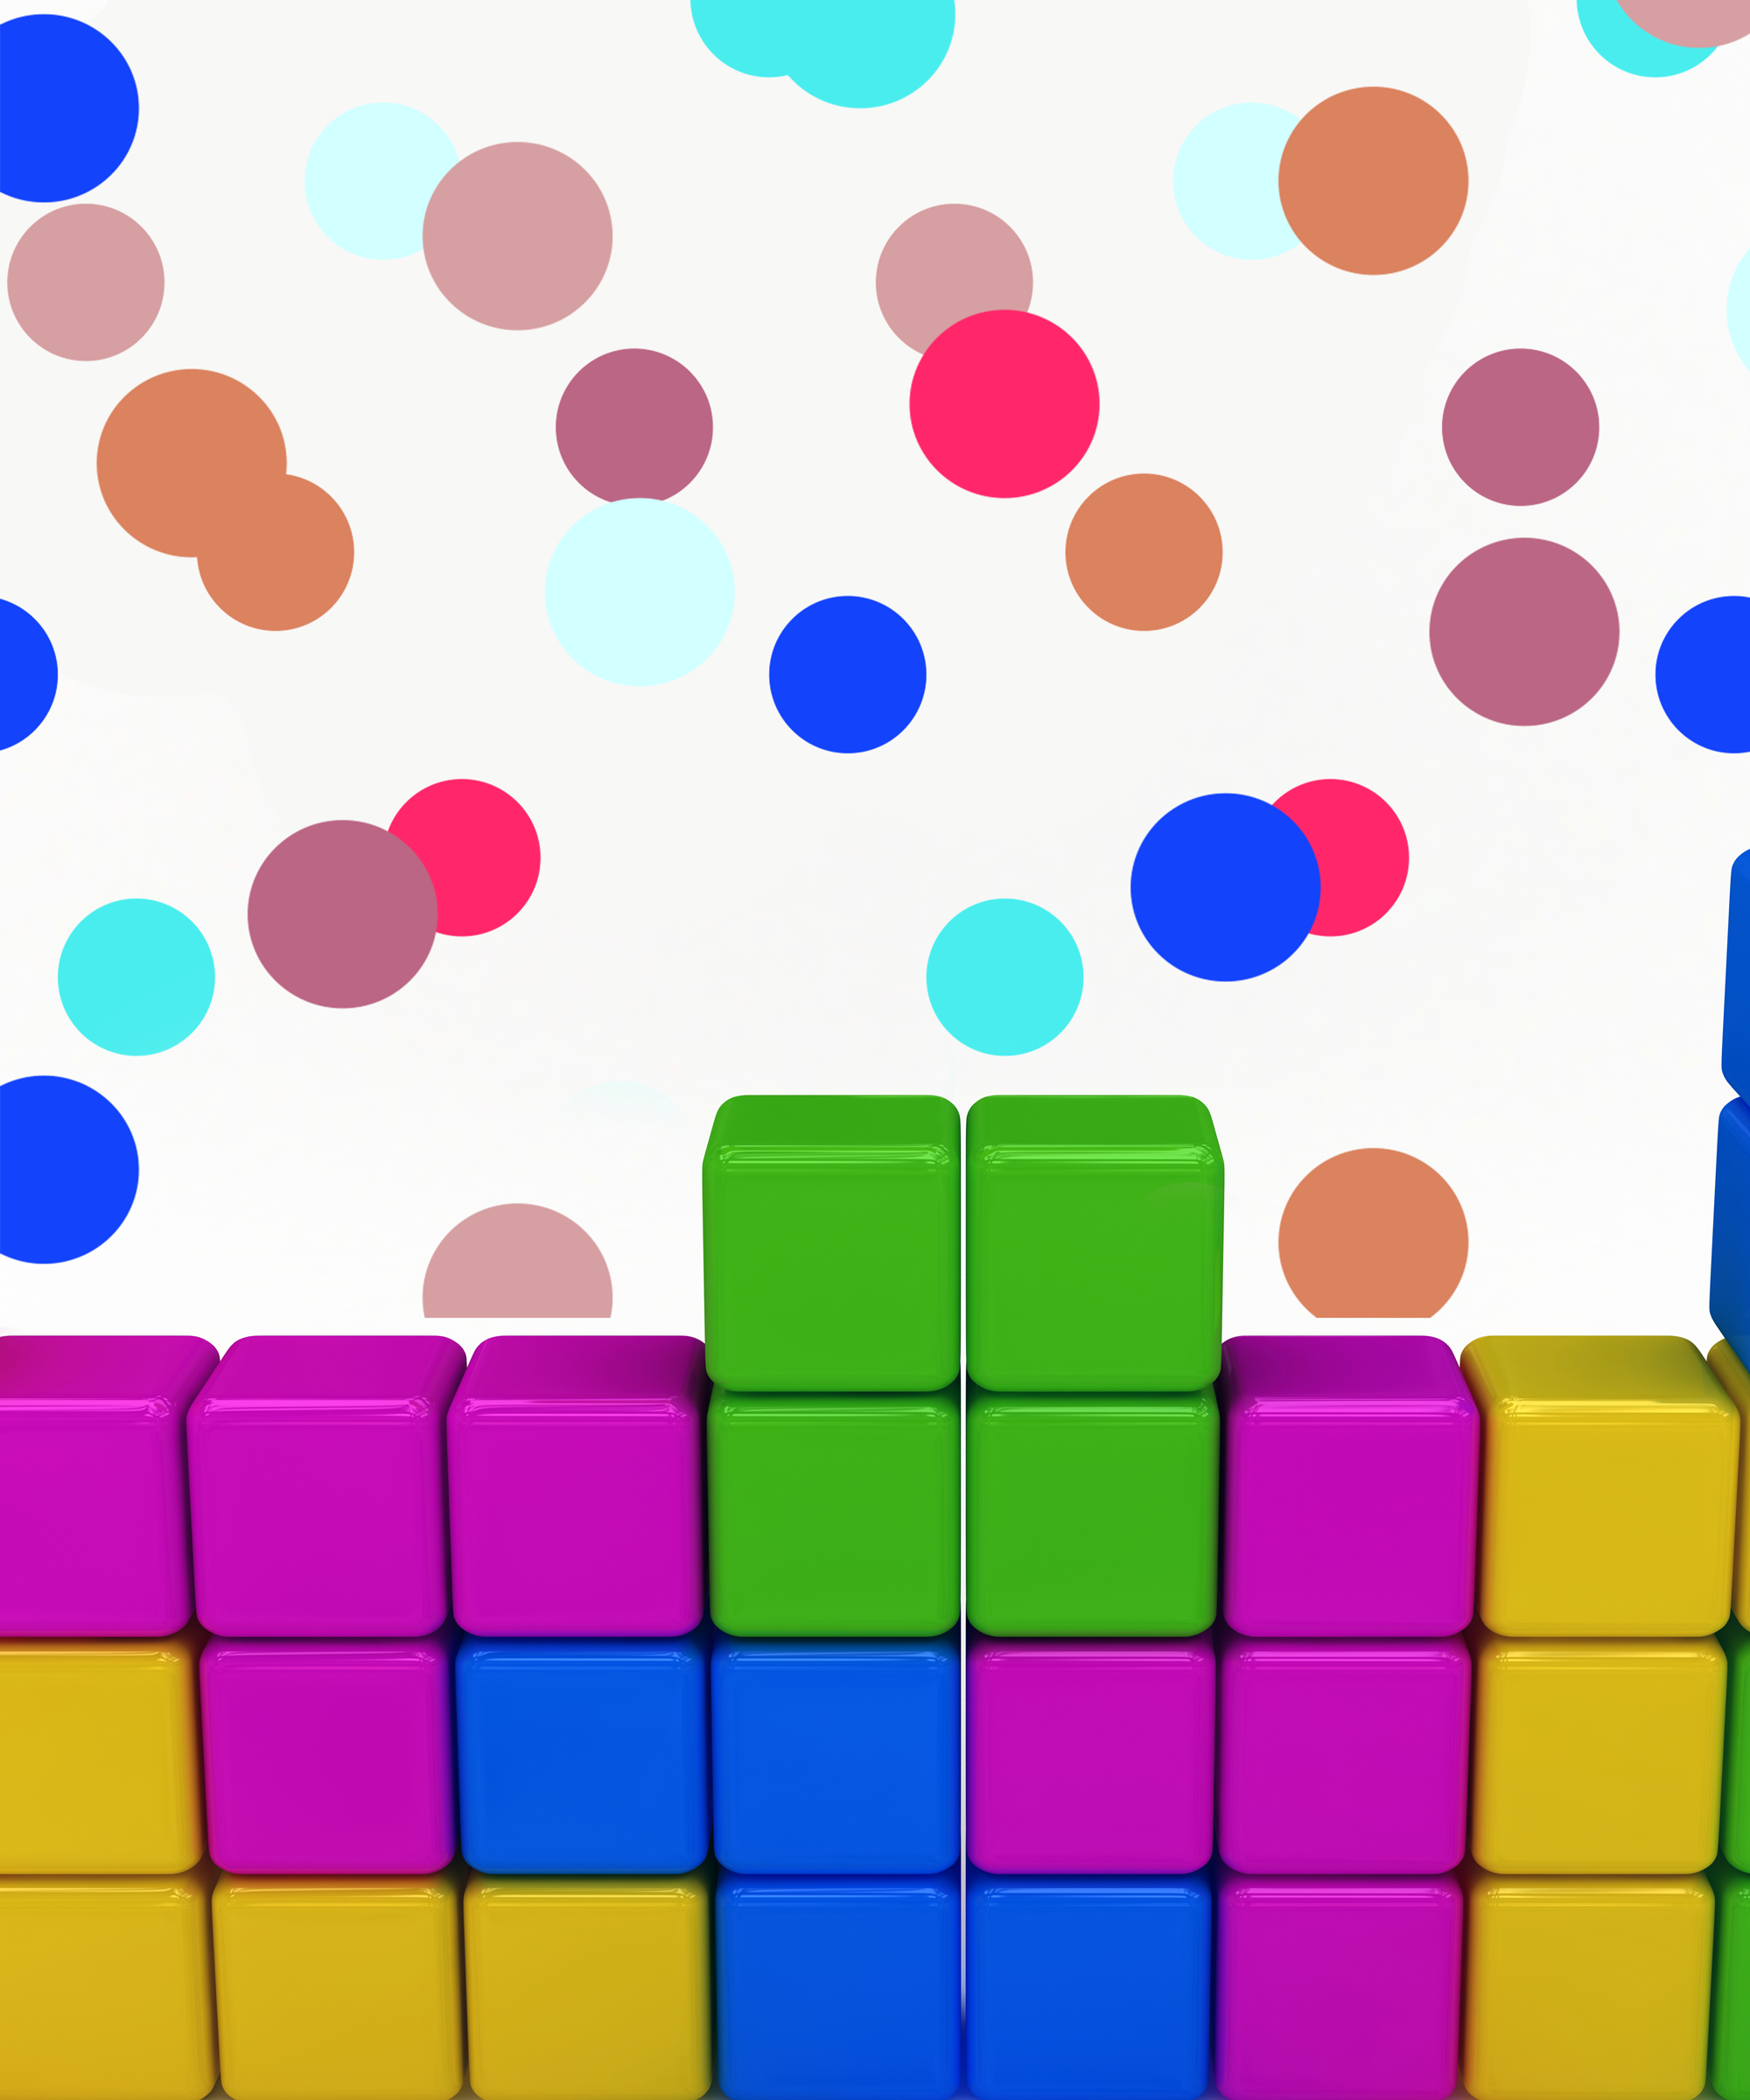 Tetris Therapy Could Help Patients In Many Ways